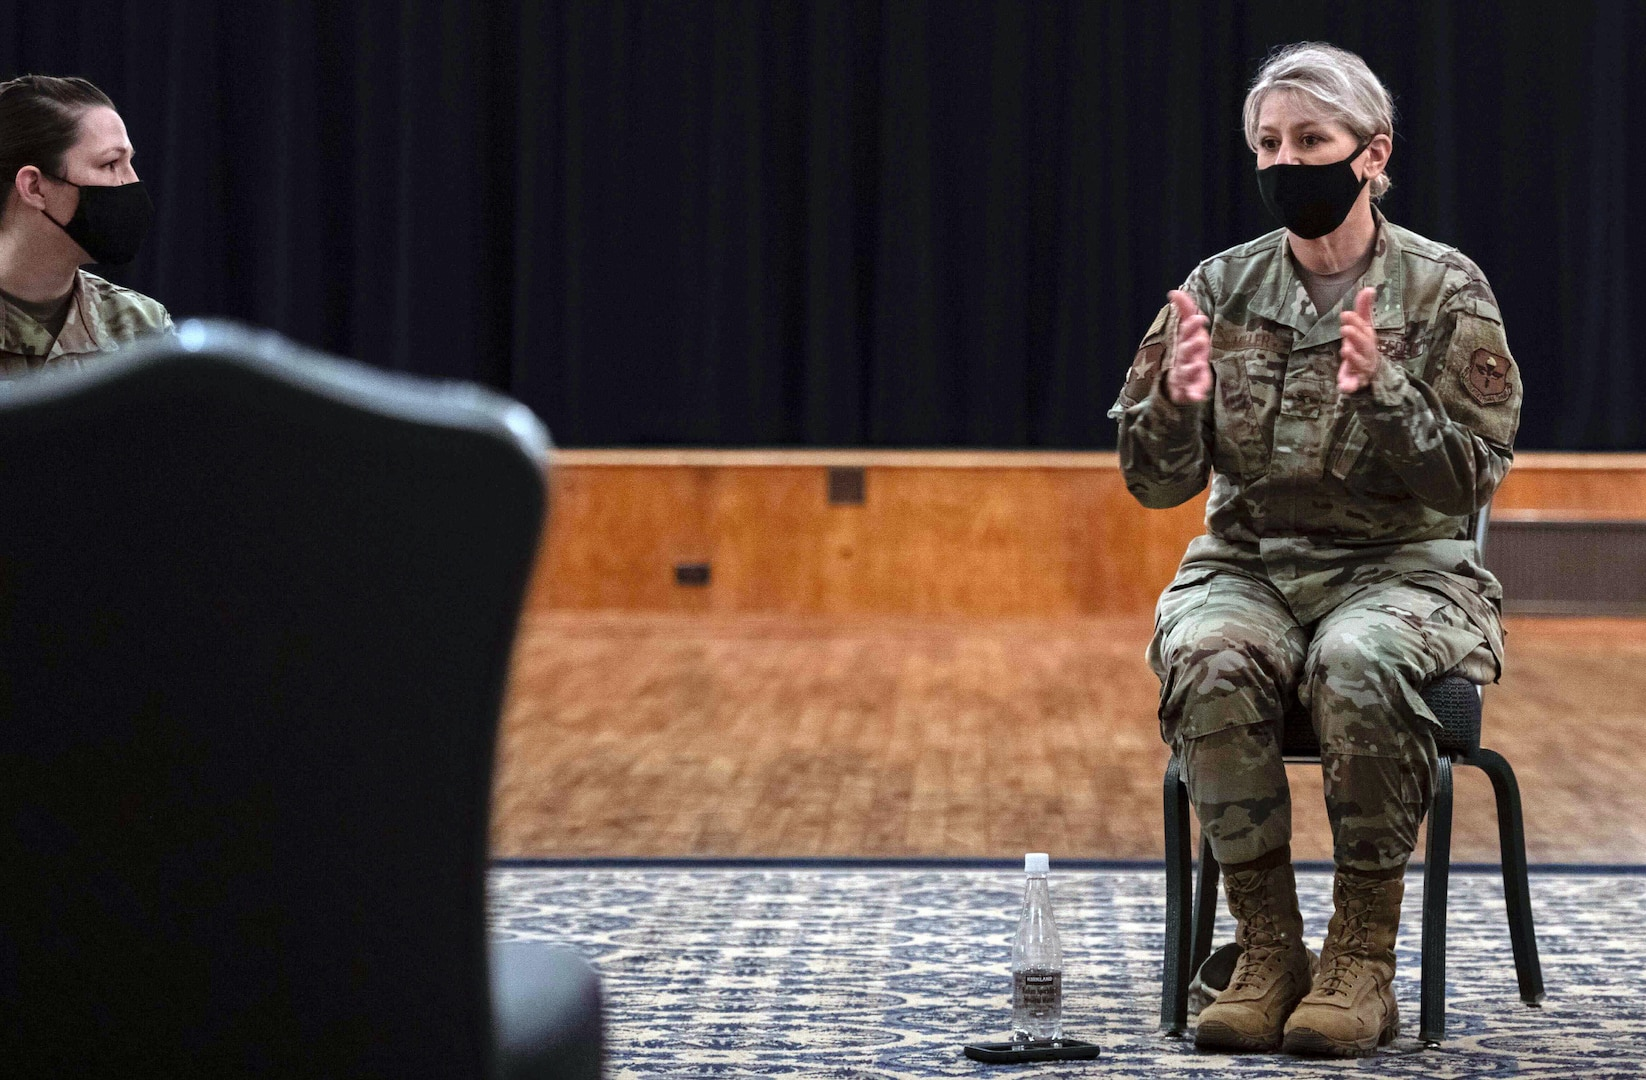 U. S. Air Force Brig. Gen Caroline M. Miller, 502nd Air Base Wing and Joint Base San Antonio commander, speaks to a group of Airmen and JBSA members during a tough conversation roundtable at Joint Base San Antonio-Randolph April 14. Miller expressed to them how these beliefs are damaging and why diversity is important in the military.